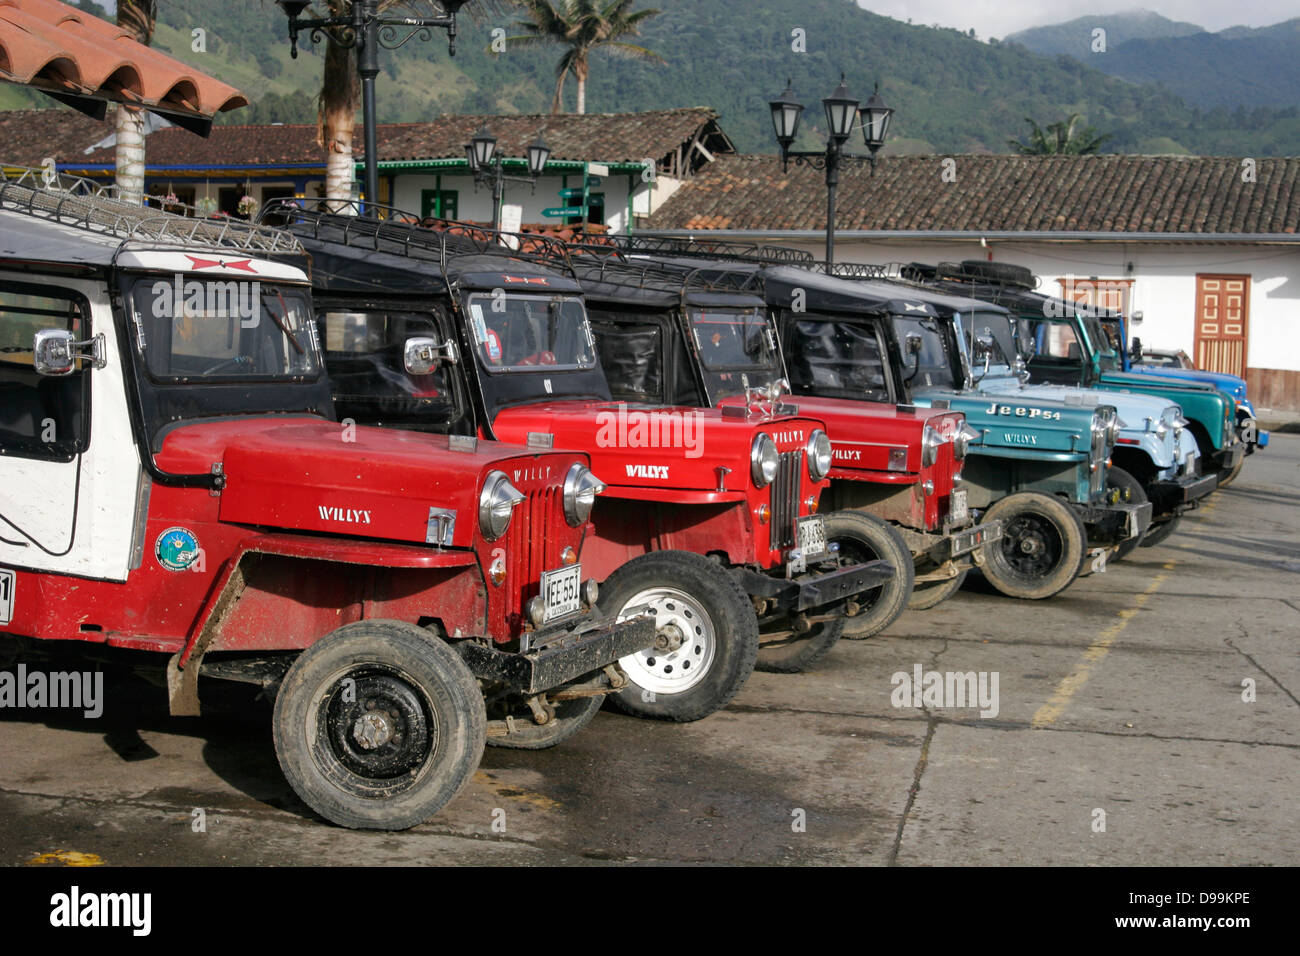 Willys Jeeps Stock Photos Images Alamy On Filter Box Old The Parking Lot In Salento Colombia Image